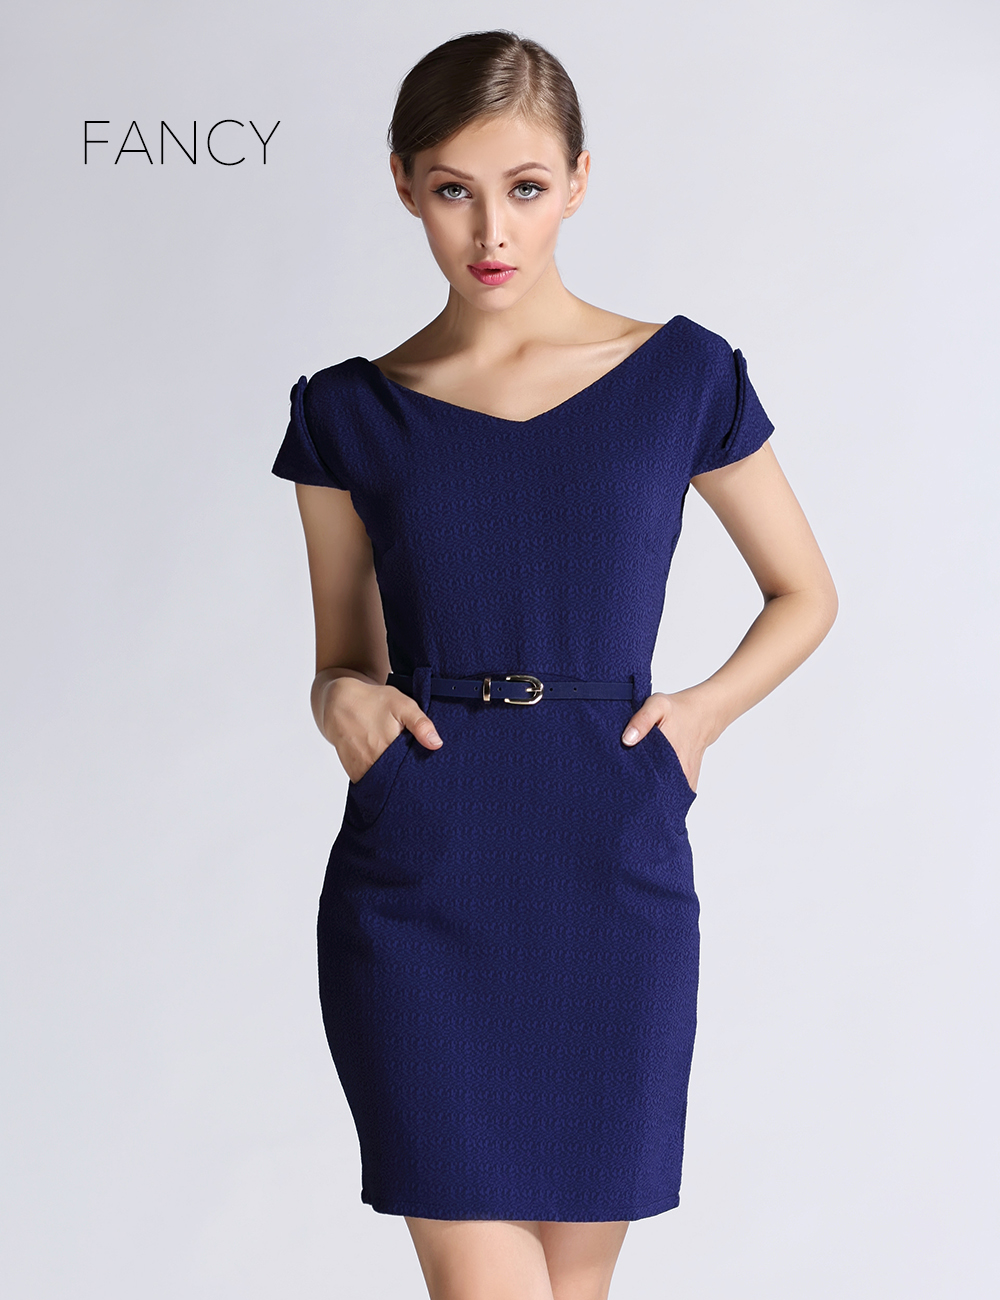 Ladies Office Dress Styles Fashion Dresses